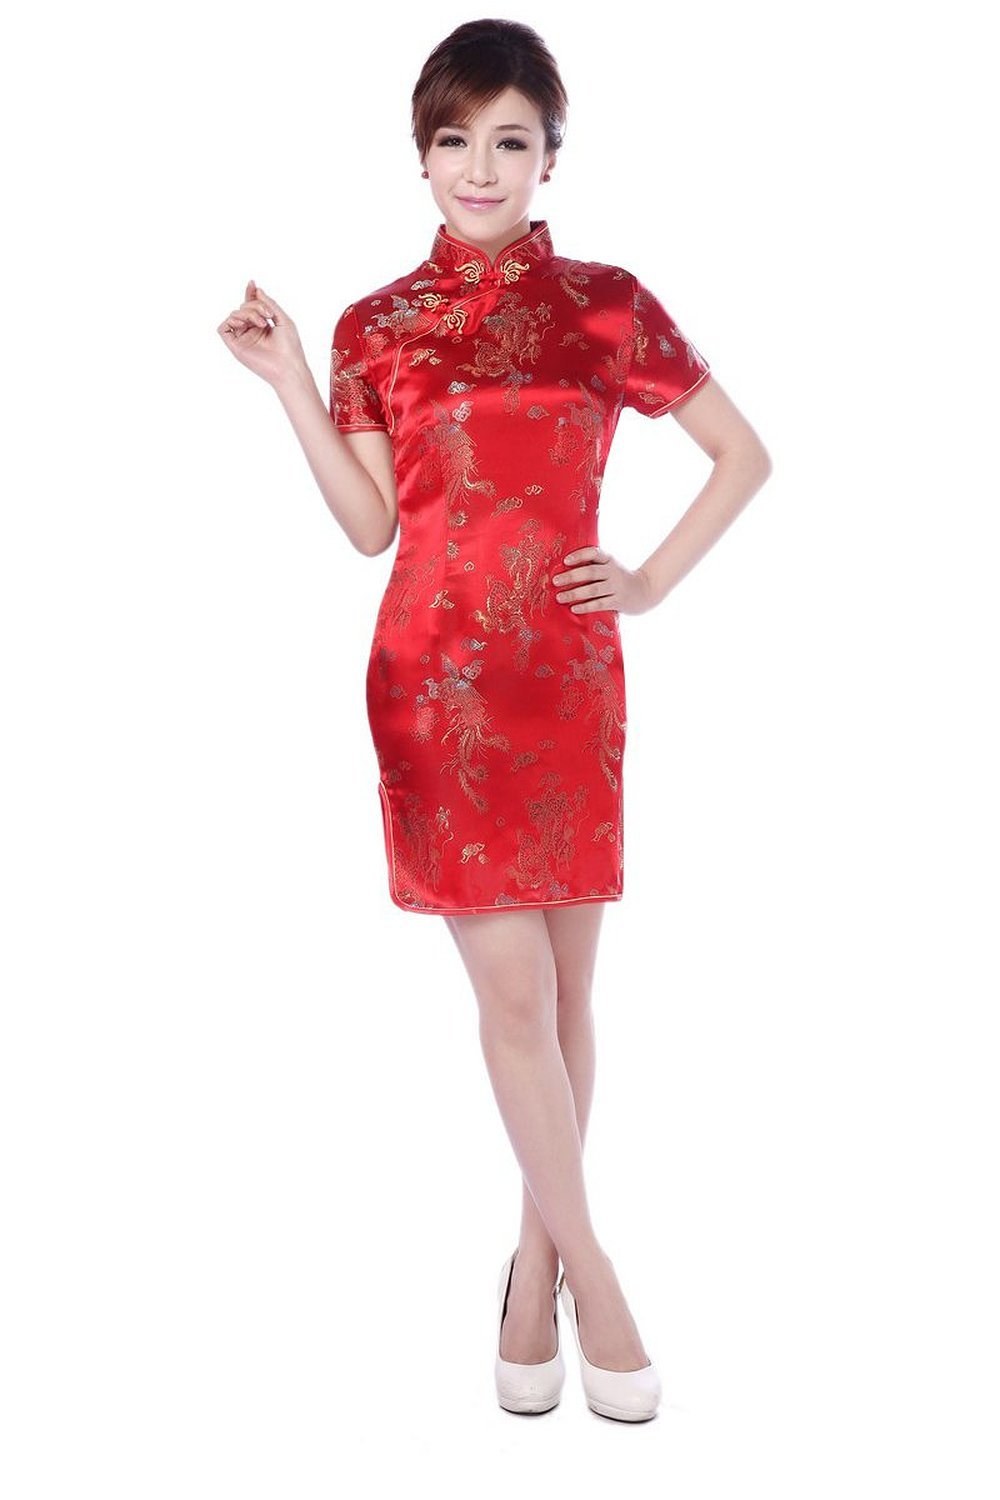 AvaCostume Women's Chinese Dragon Phoenix Qipao Cheongsam Embroidery Dress Size US 12 Red